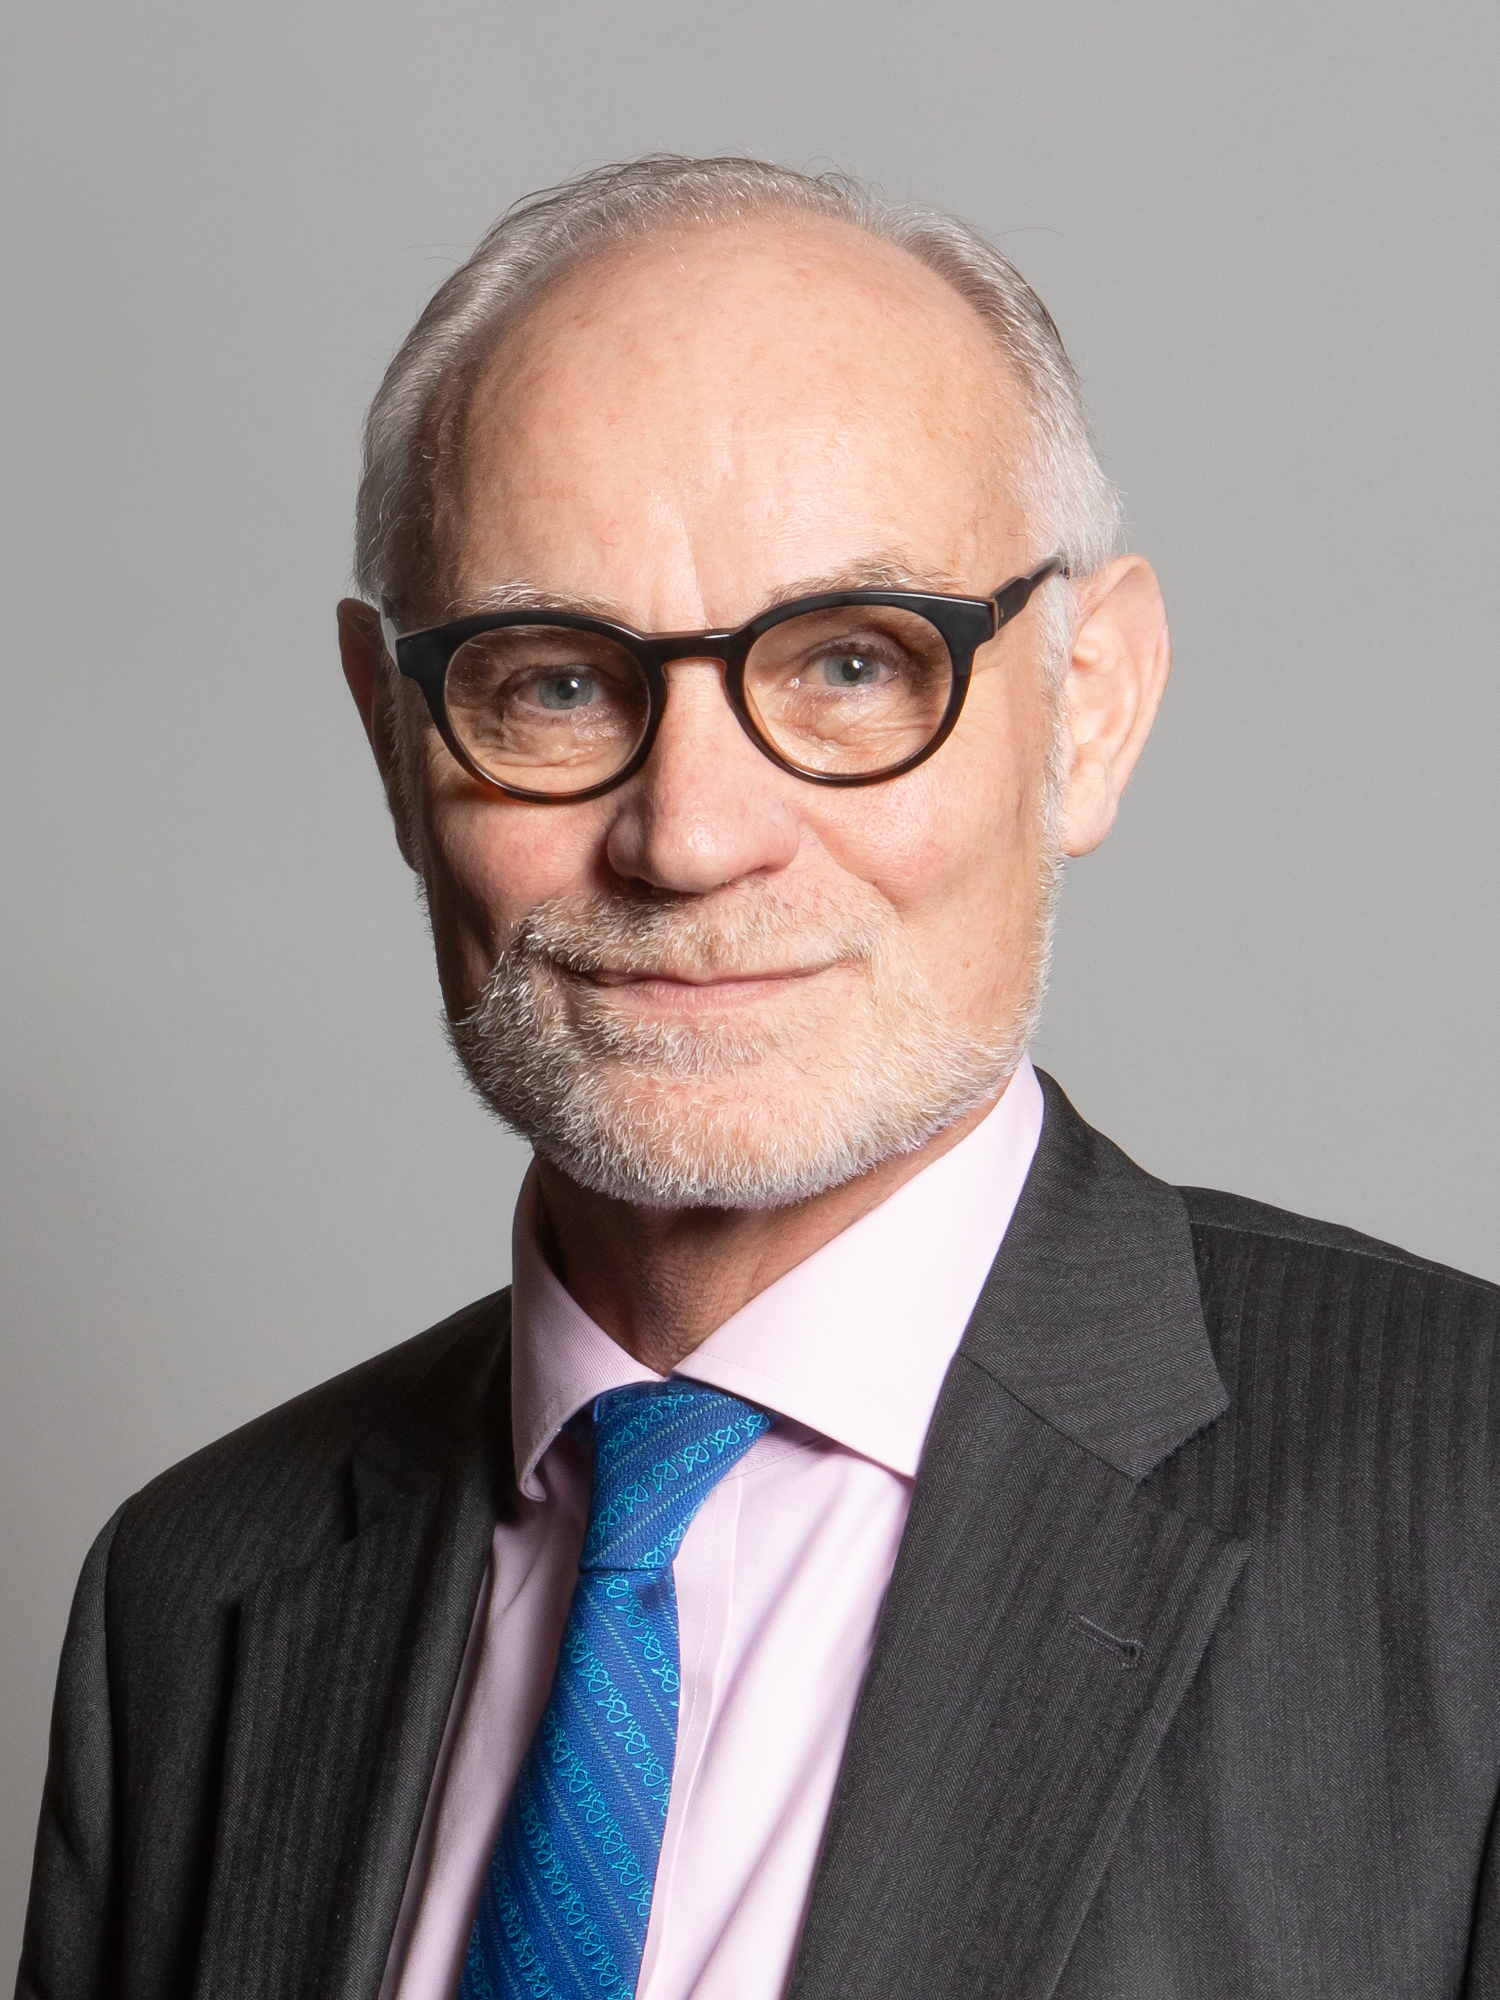 Crispin Blunt has been nominated for Politician of the Year at the PinkNews Awards 2020